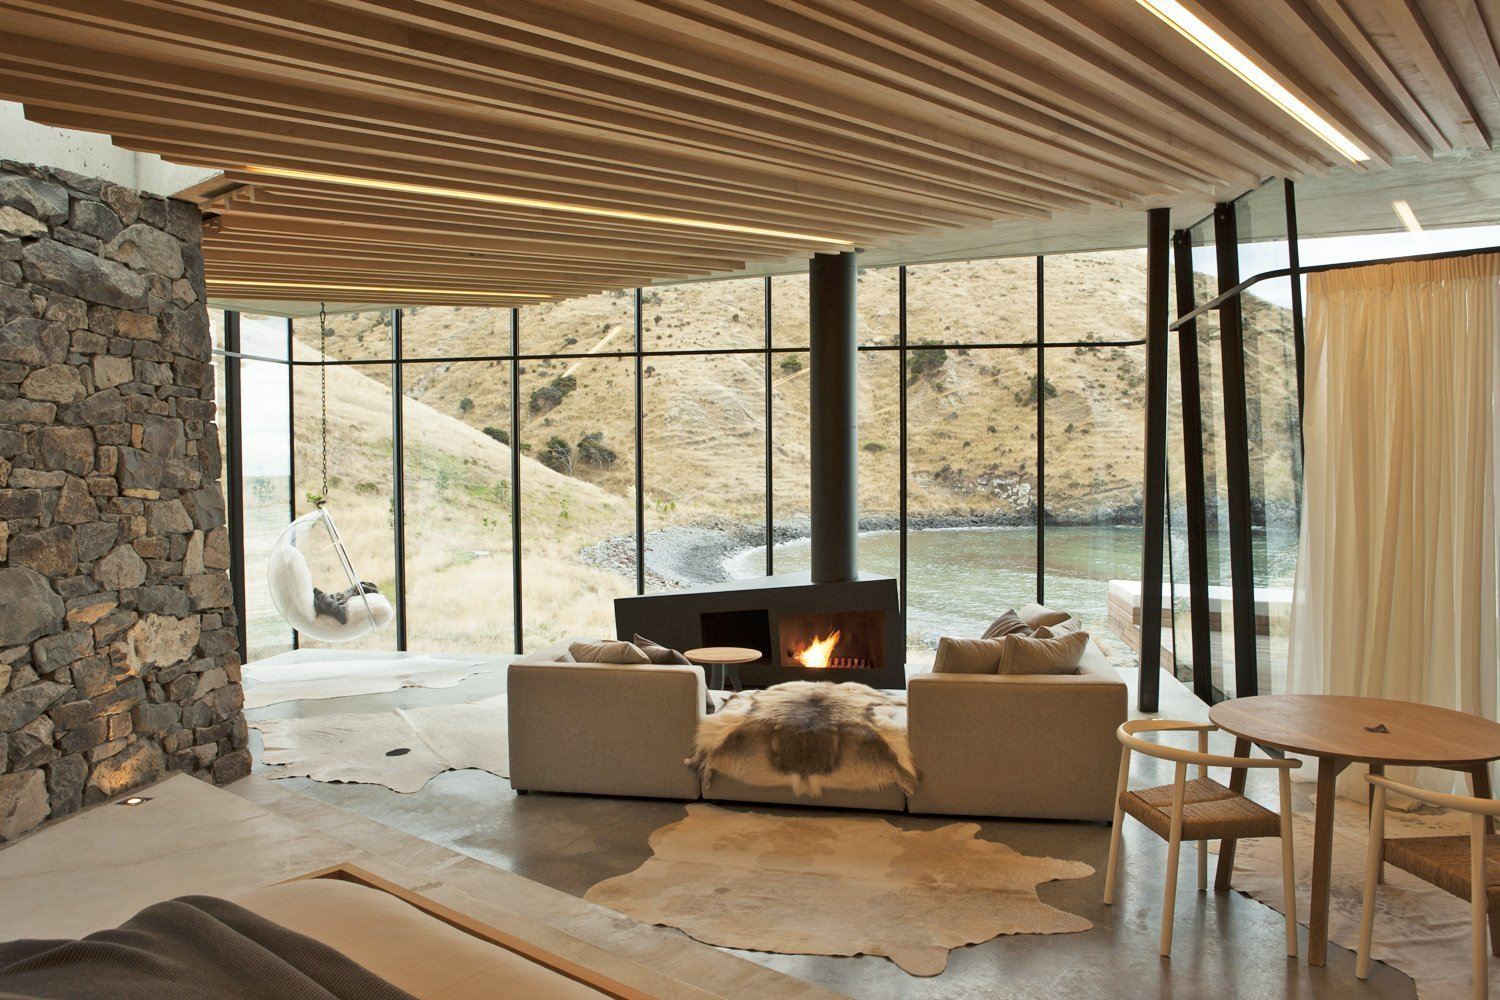 Living, Standard Layout, Table, End Tables, Sectional, Ceiling, Chair, and Concrete In this remote holiday rental home in New Zealand, guests can warm themselves by the asymmetrically shaped fireplace while looking out to views of a gorgeous, deserted by.  Best Living Sectional Standard Layout Table Photos from 10 Modern Fireplaces That Make For Inviting Interiors